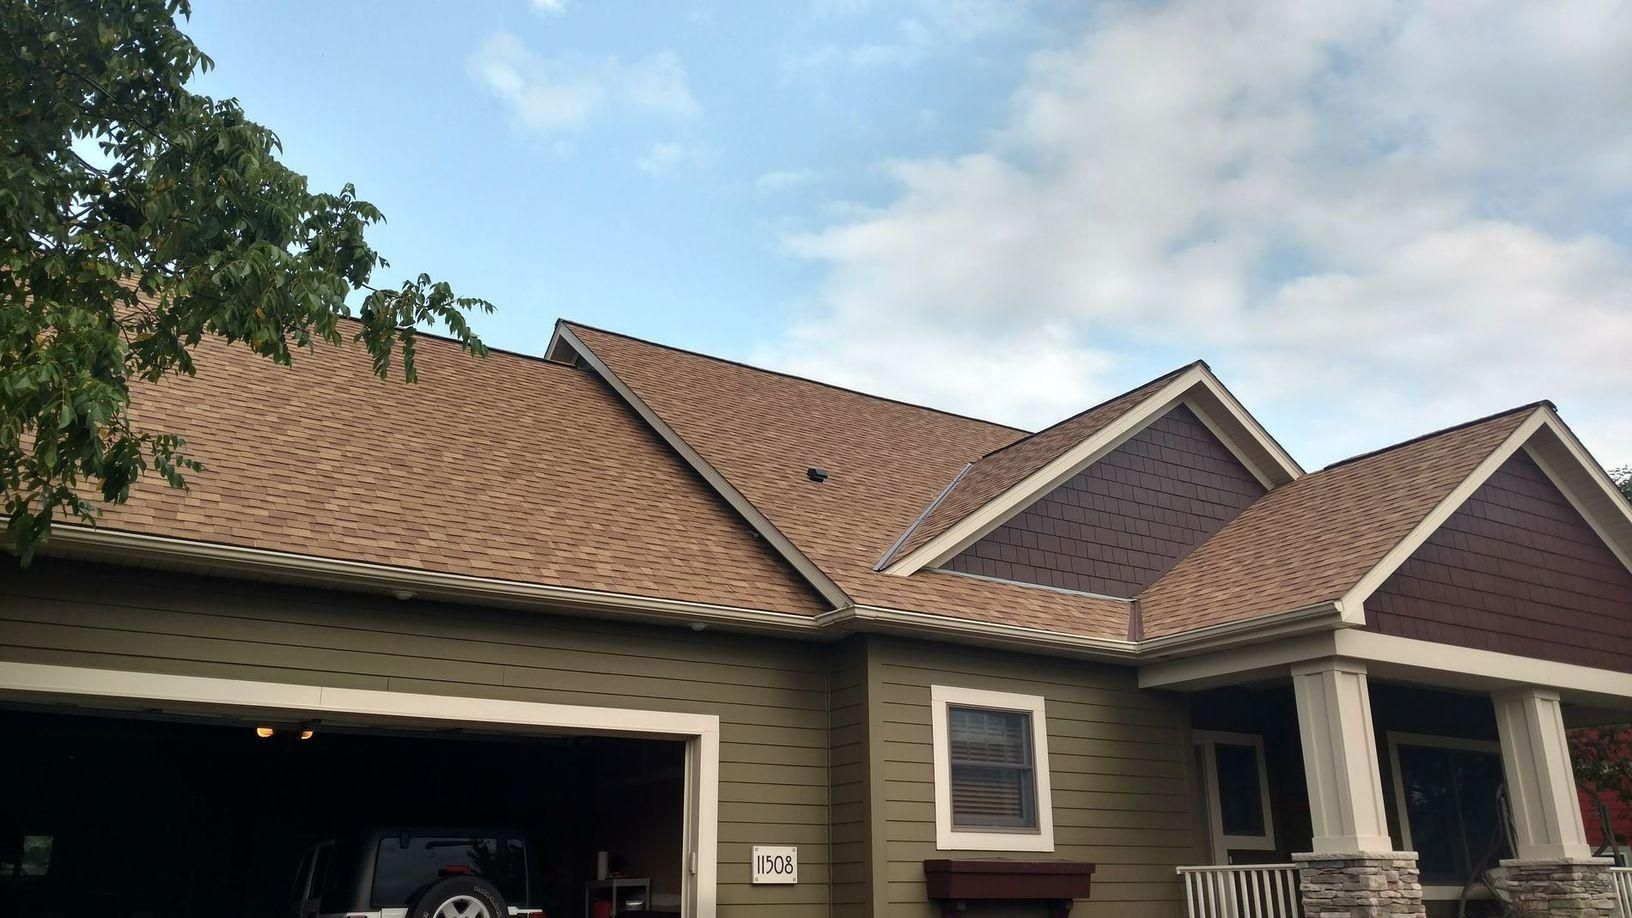 Roof Repair Dayton Mn Roofing Project Project Completion Outdoor Renovation Roof Repair Roofing